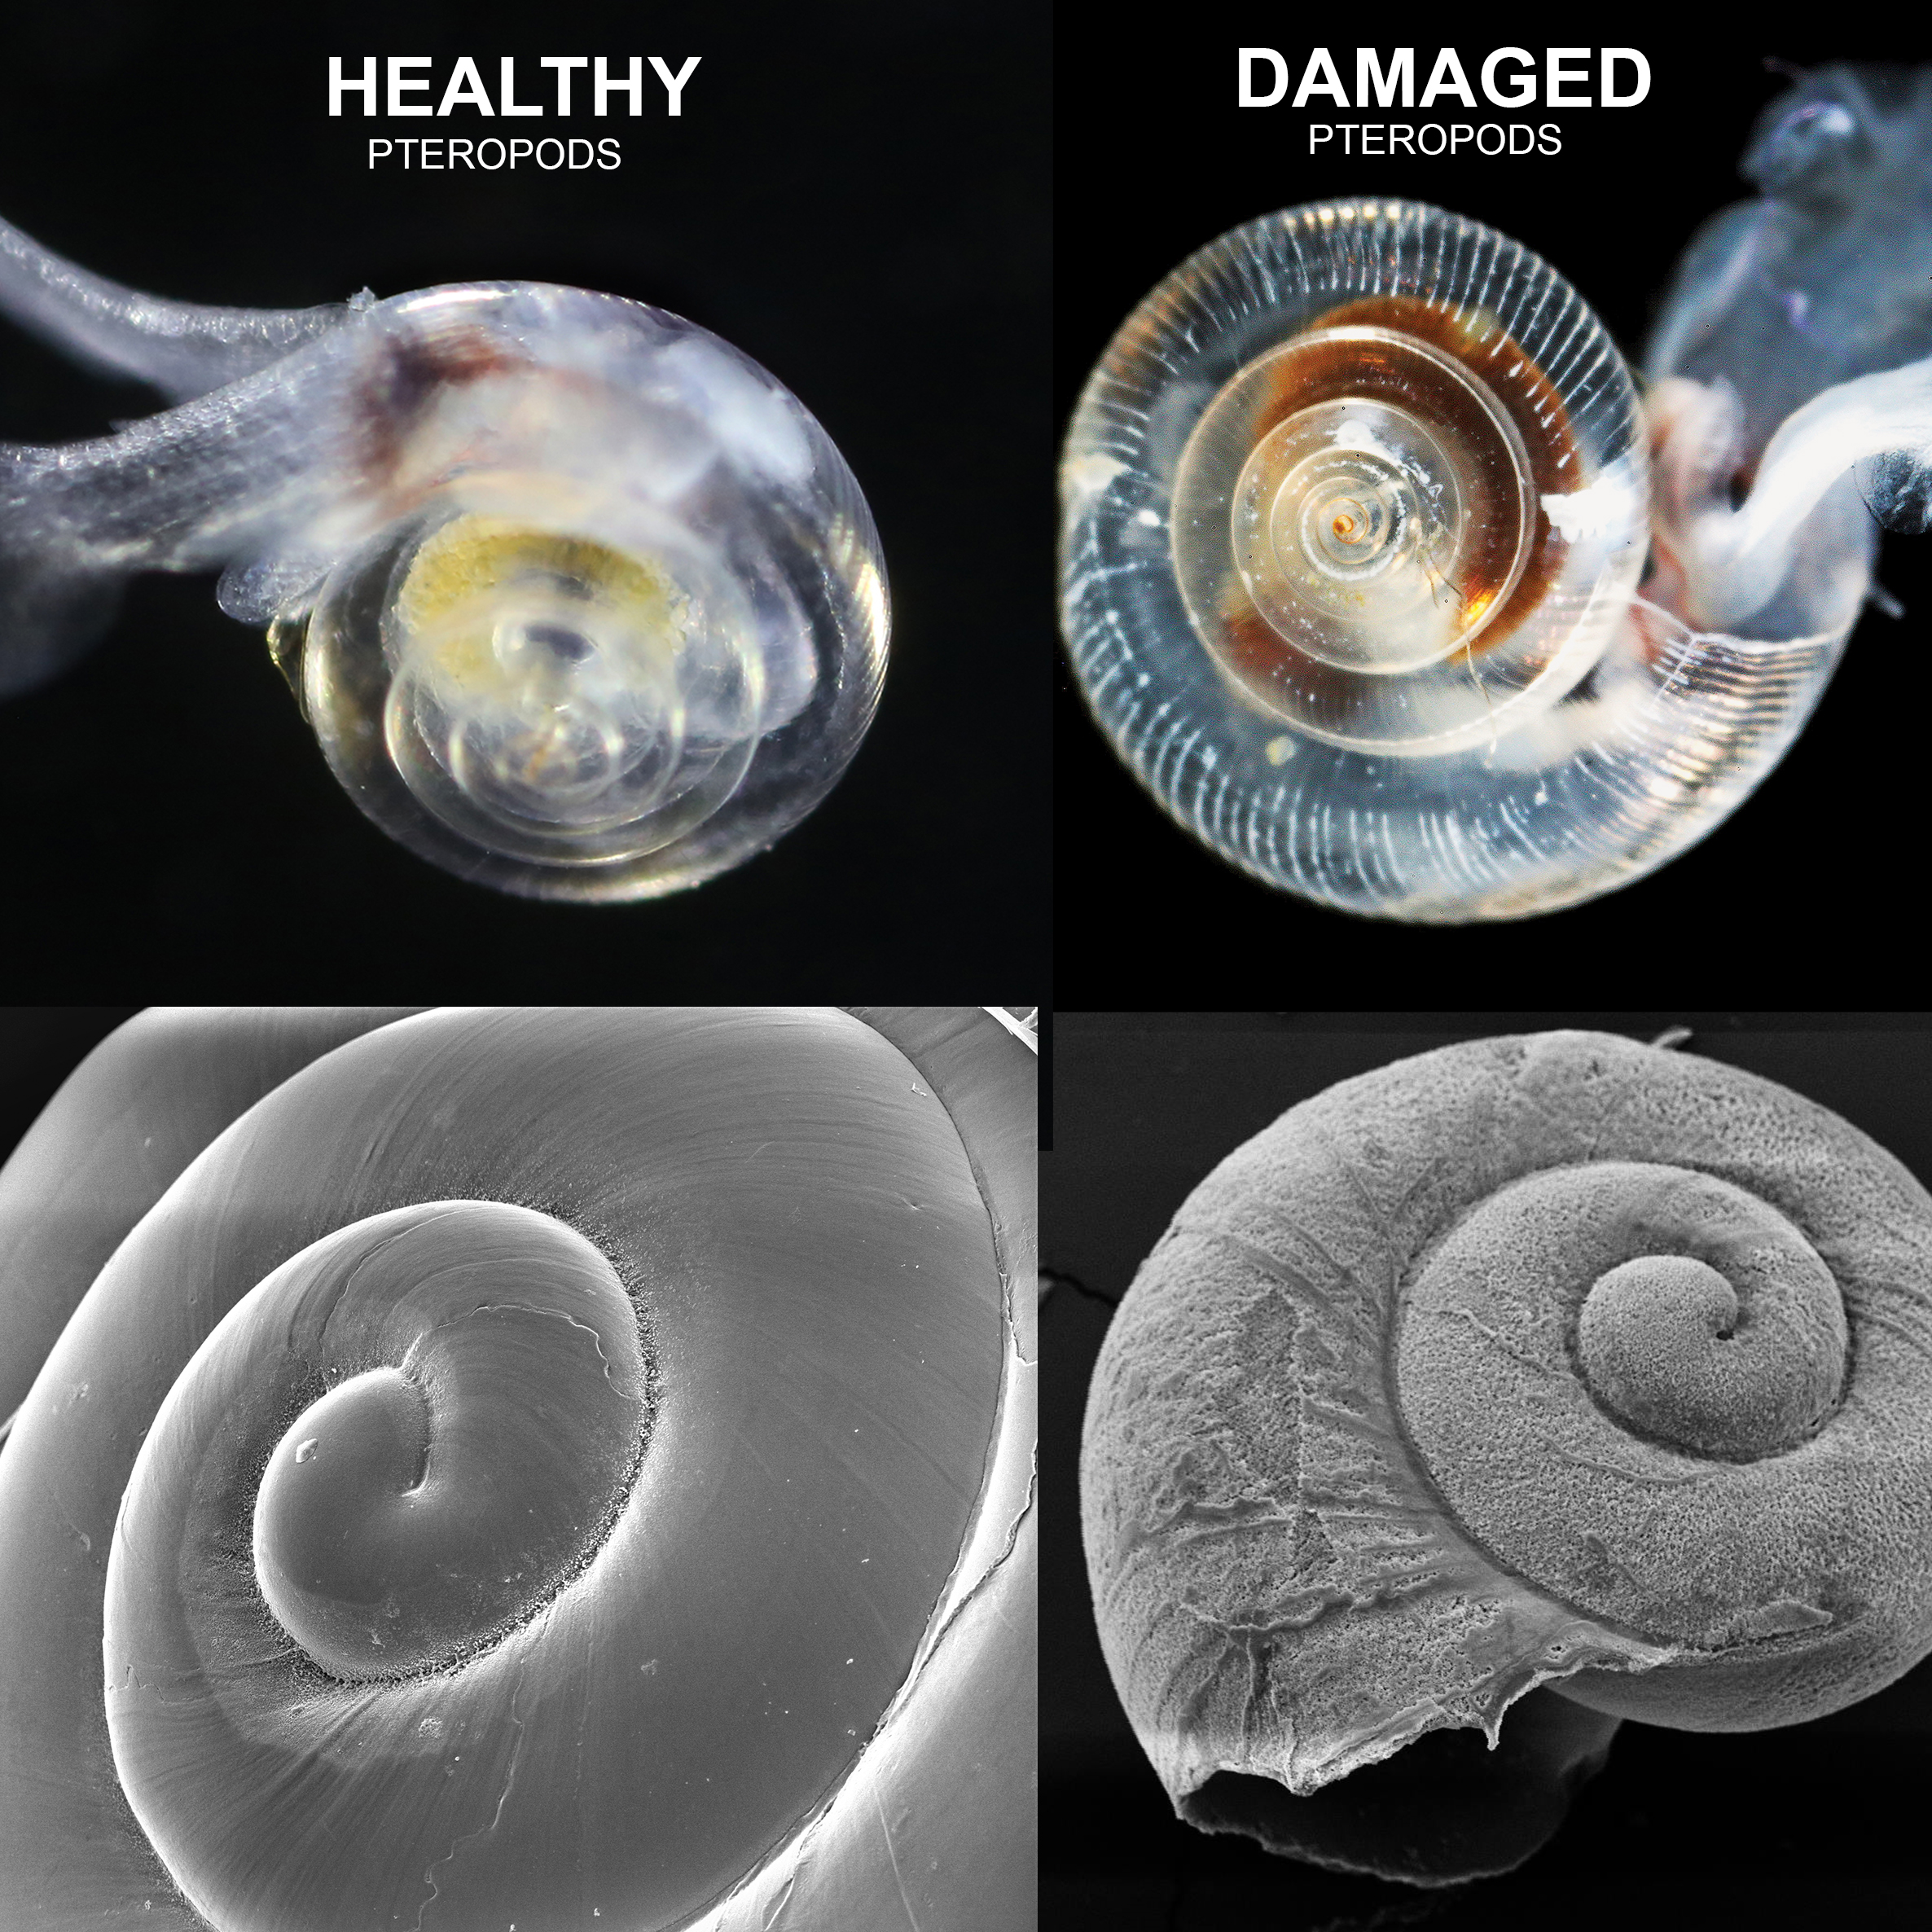 pteropod-shell-comparisons-square.jpg